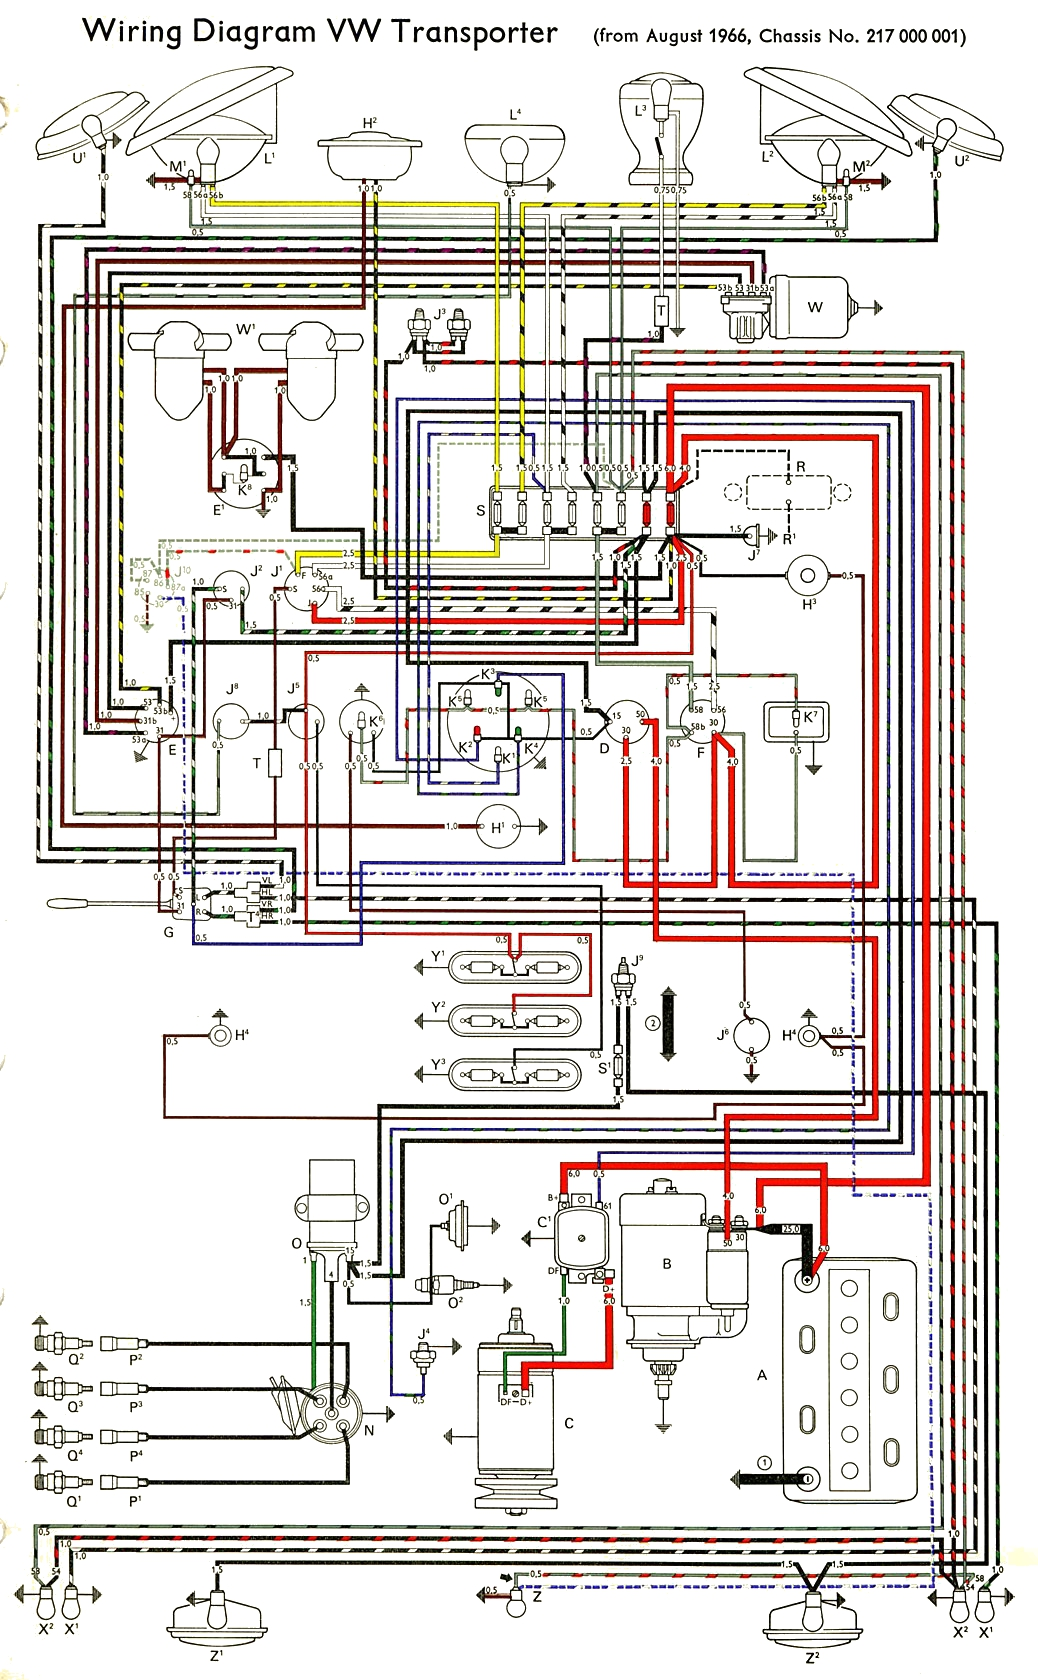 emergency light (hazard) wiring - the split screen van club 2006 vw pat starter wiring diagram